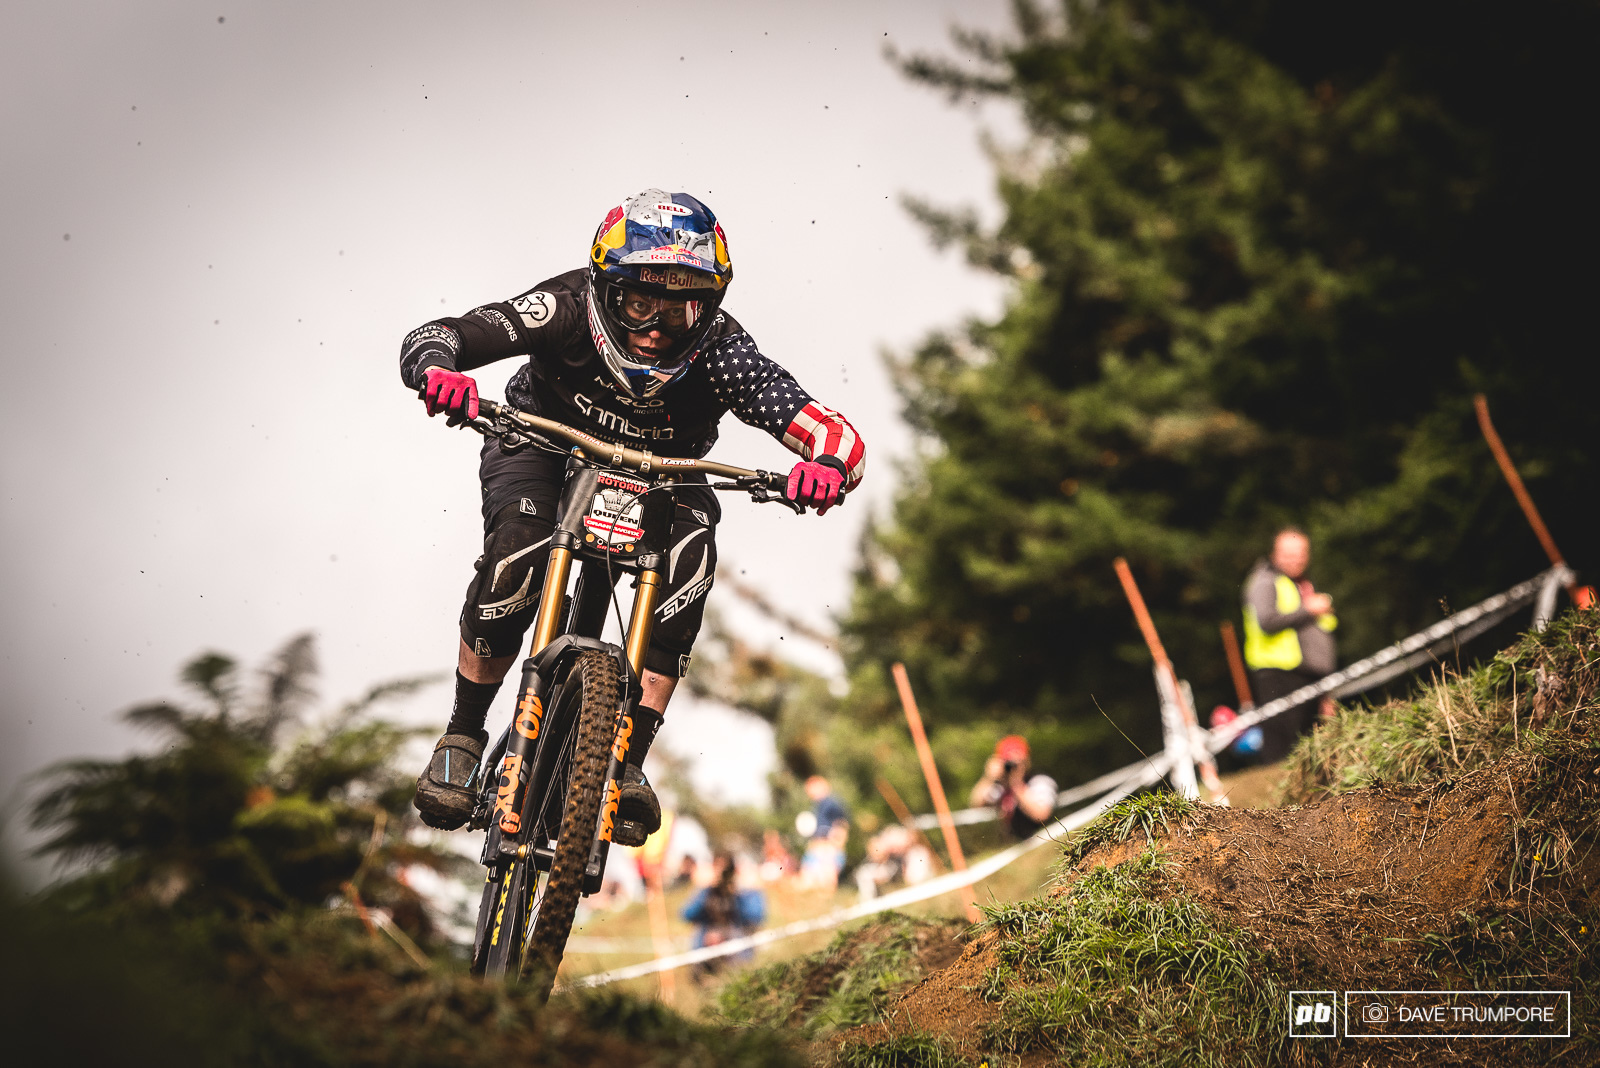 The Queen of Crankworx Jill Kinner dropping into the finish arena.